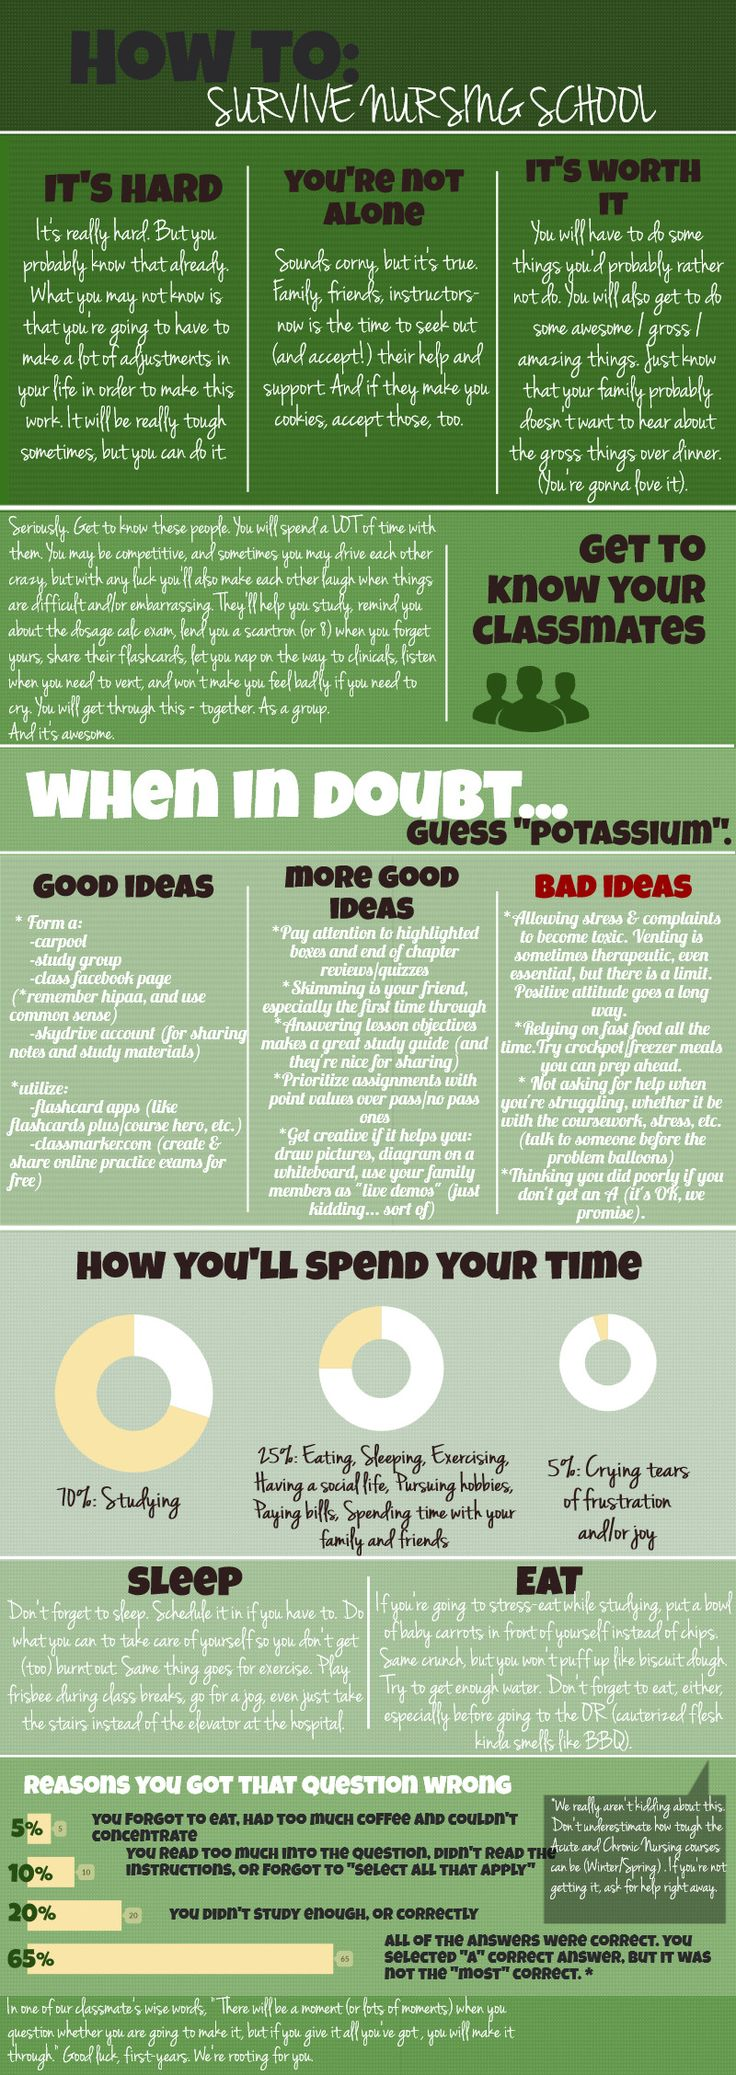 """Sounds about accurate for EMT & Paramedic School too.... (except for the """"when in doubt... guess potassium"""") How to Survive Nursing School    @Piktochart Infographic"""